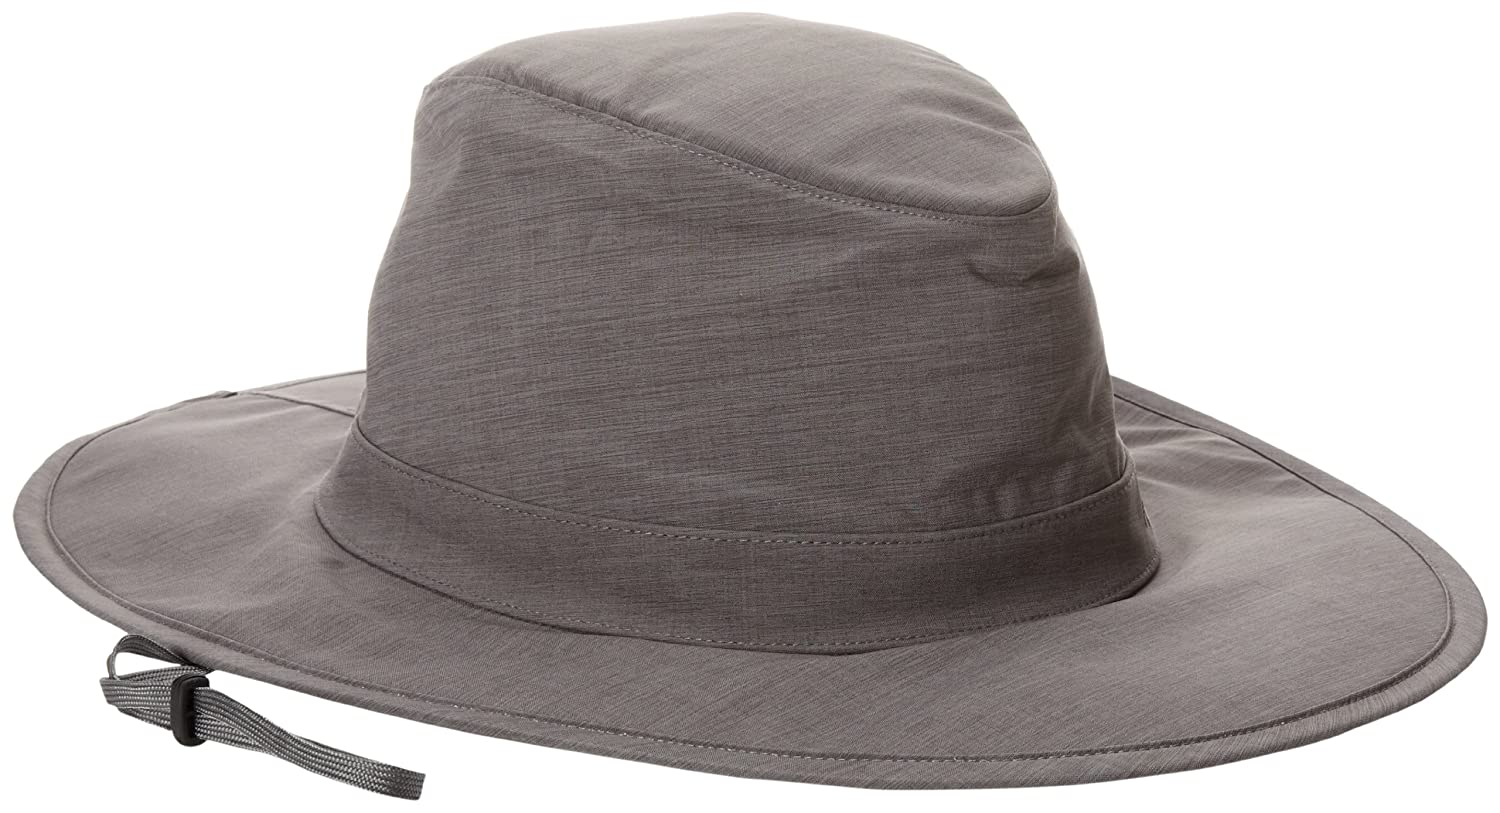 Outdoor Research Olympia Rain Hat 82165-008